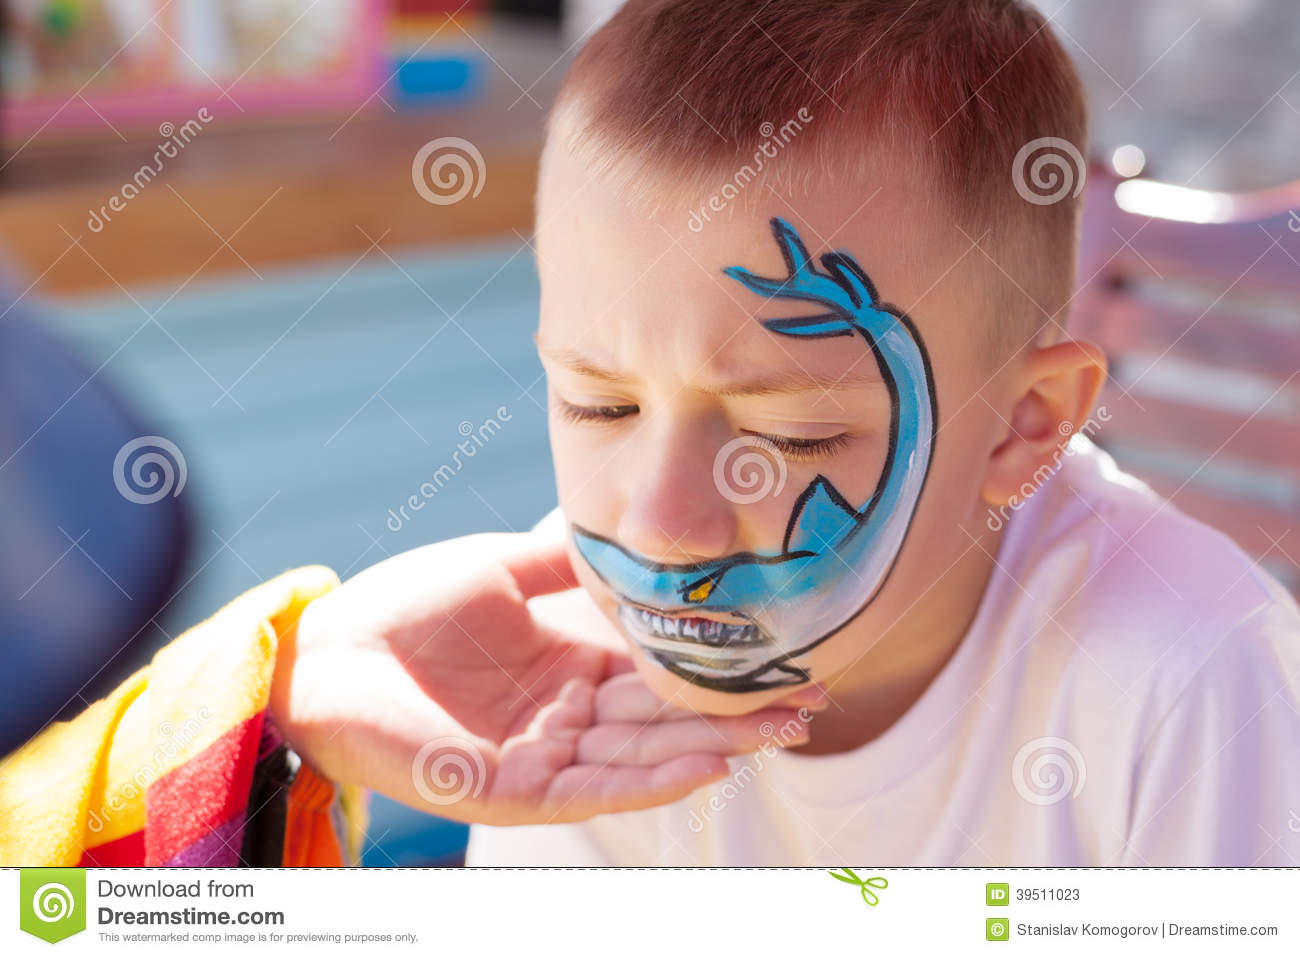 Boy painting face with shark.